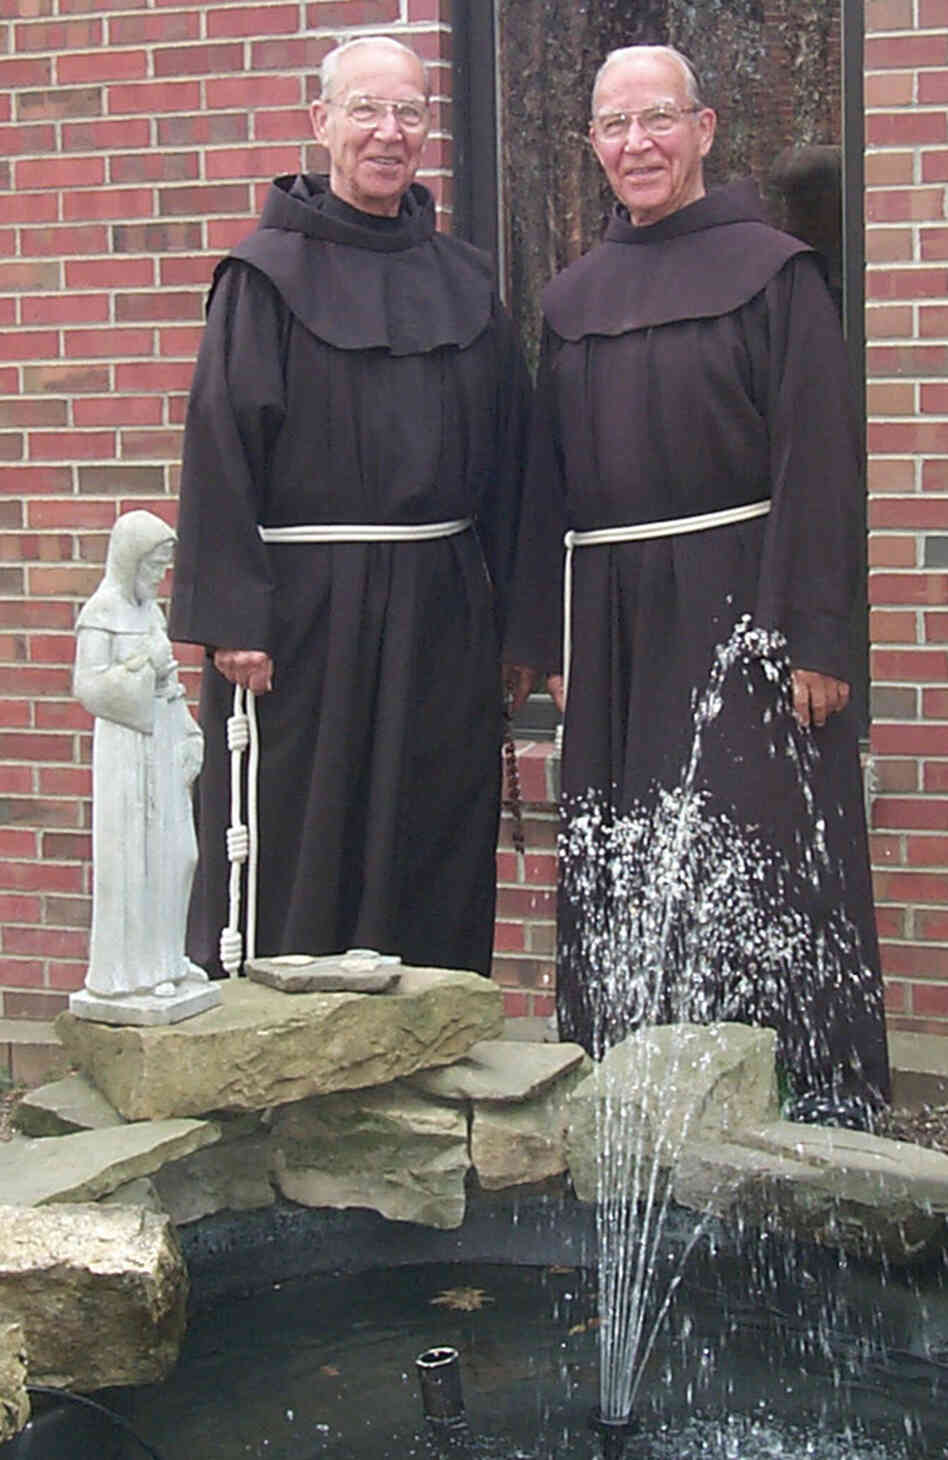 May 2003 photo provided by St. Bonaventure University of shows Adrian, left, and Julian Riester, identical twins and brothers in the Order of Friars Minor.